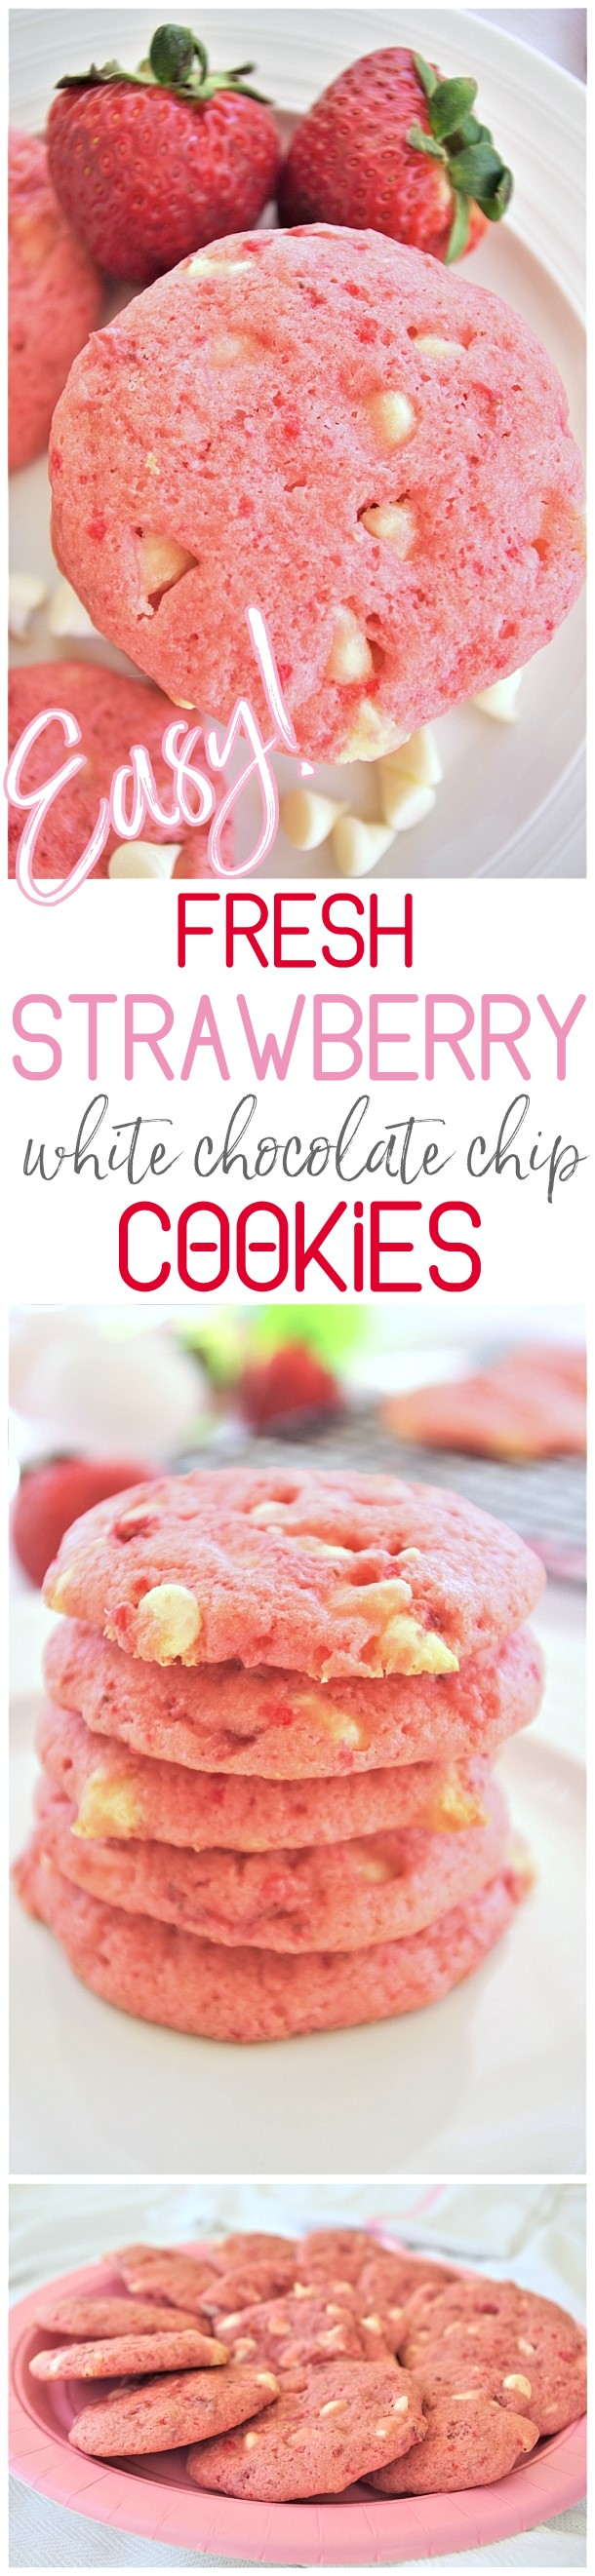 Easy Fresh Strawberry White Chocolate Chip Cookies Dessert Yummy and Quick Recipe via Dreaming in DIY #strawberrycookies #strawberrywhitechocolatecookies #easycookies #pinkcookies #valentinesdaydesserts #valentinesday #babyshowerdesserts #bridalshowerdesserts #brunch #springdesserts #summerdesserts